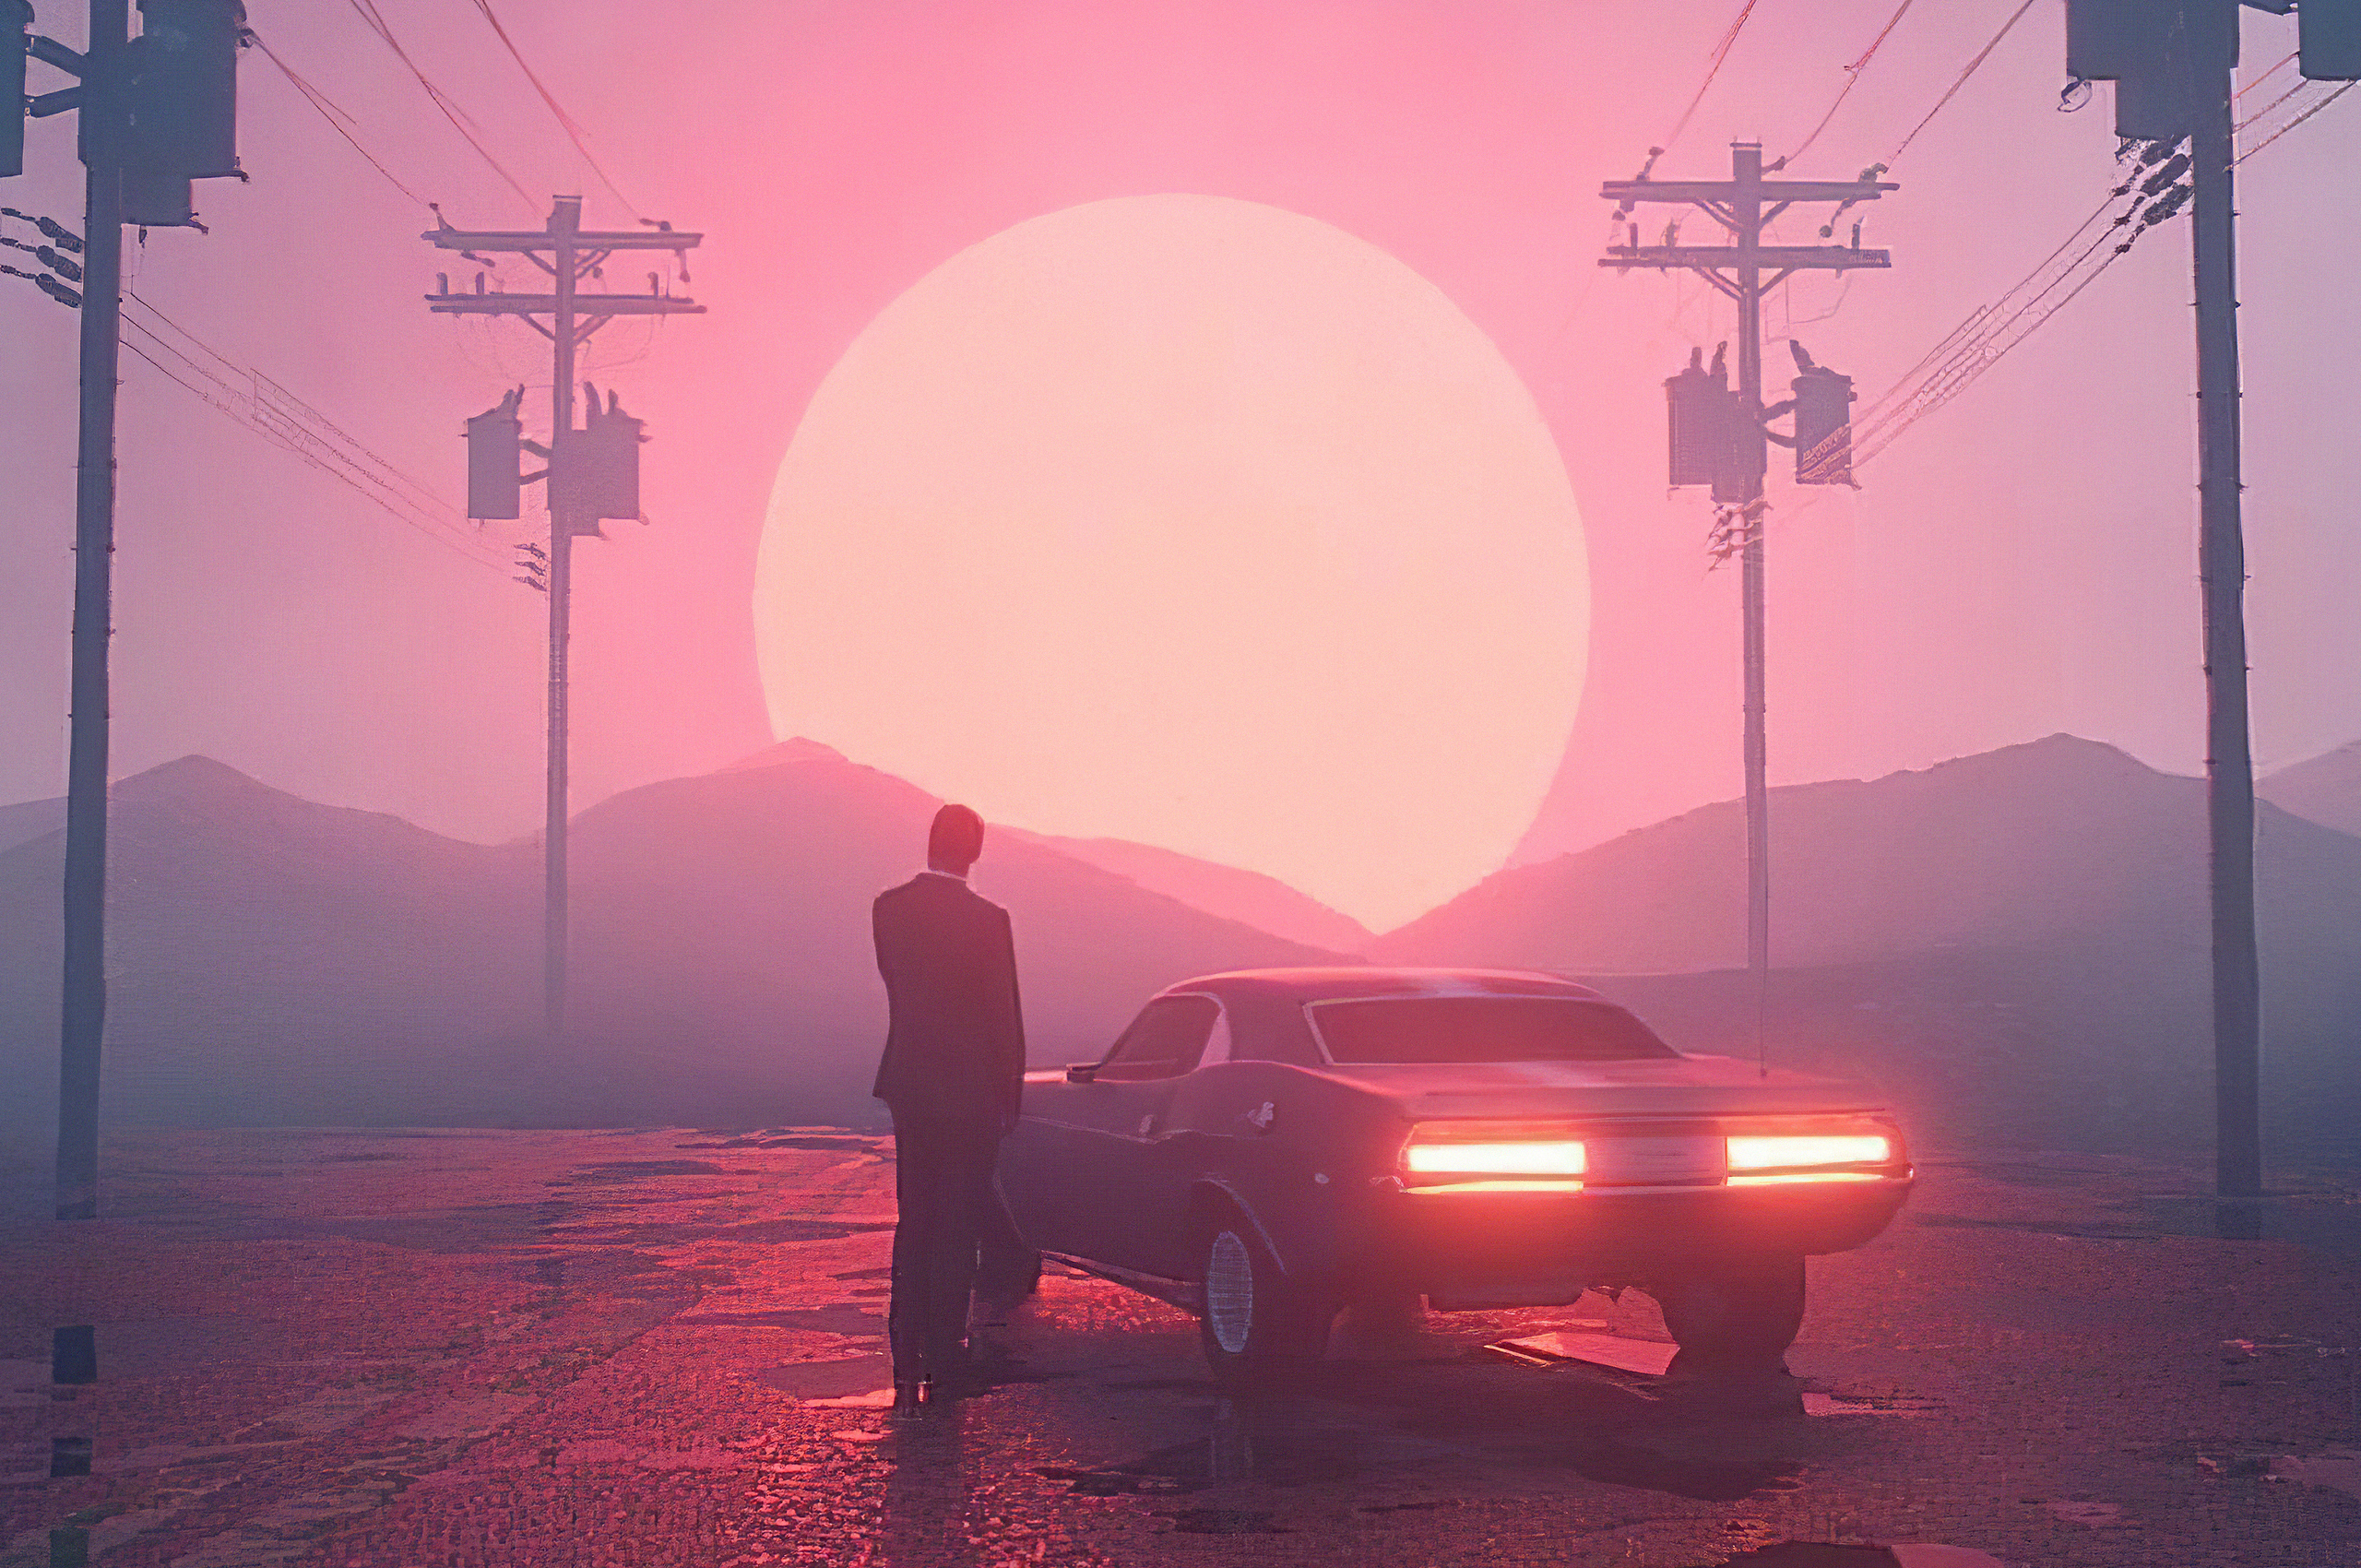 vaporwave-ride-sunset-rn.jpg